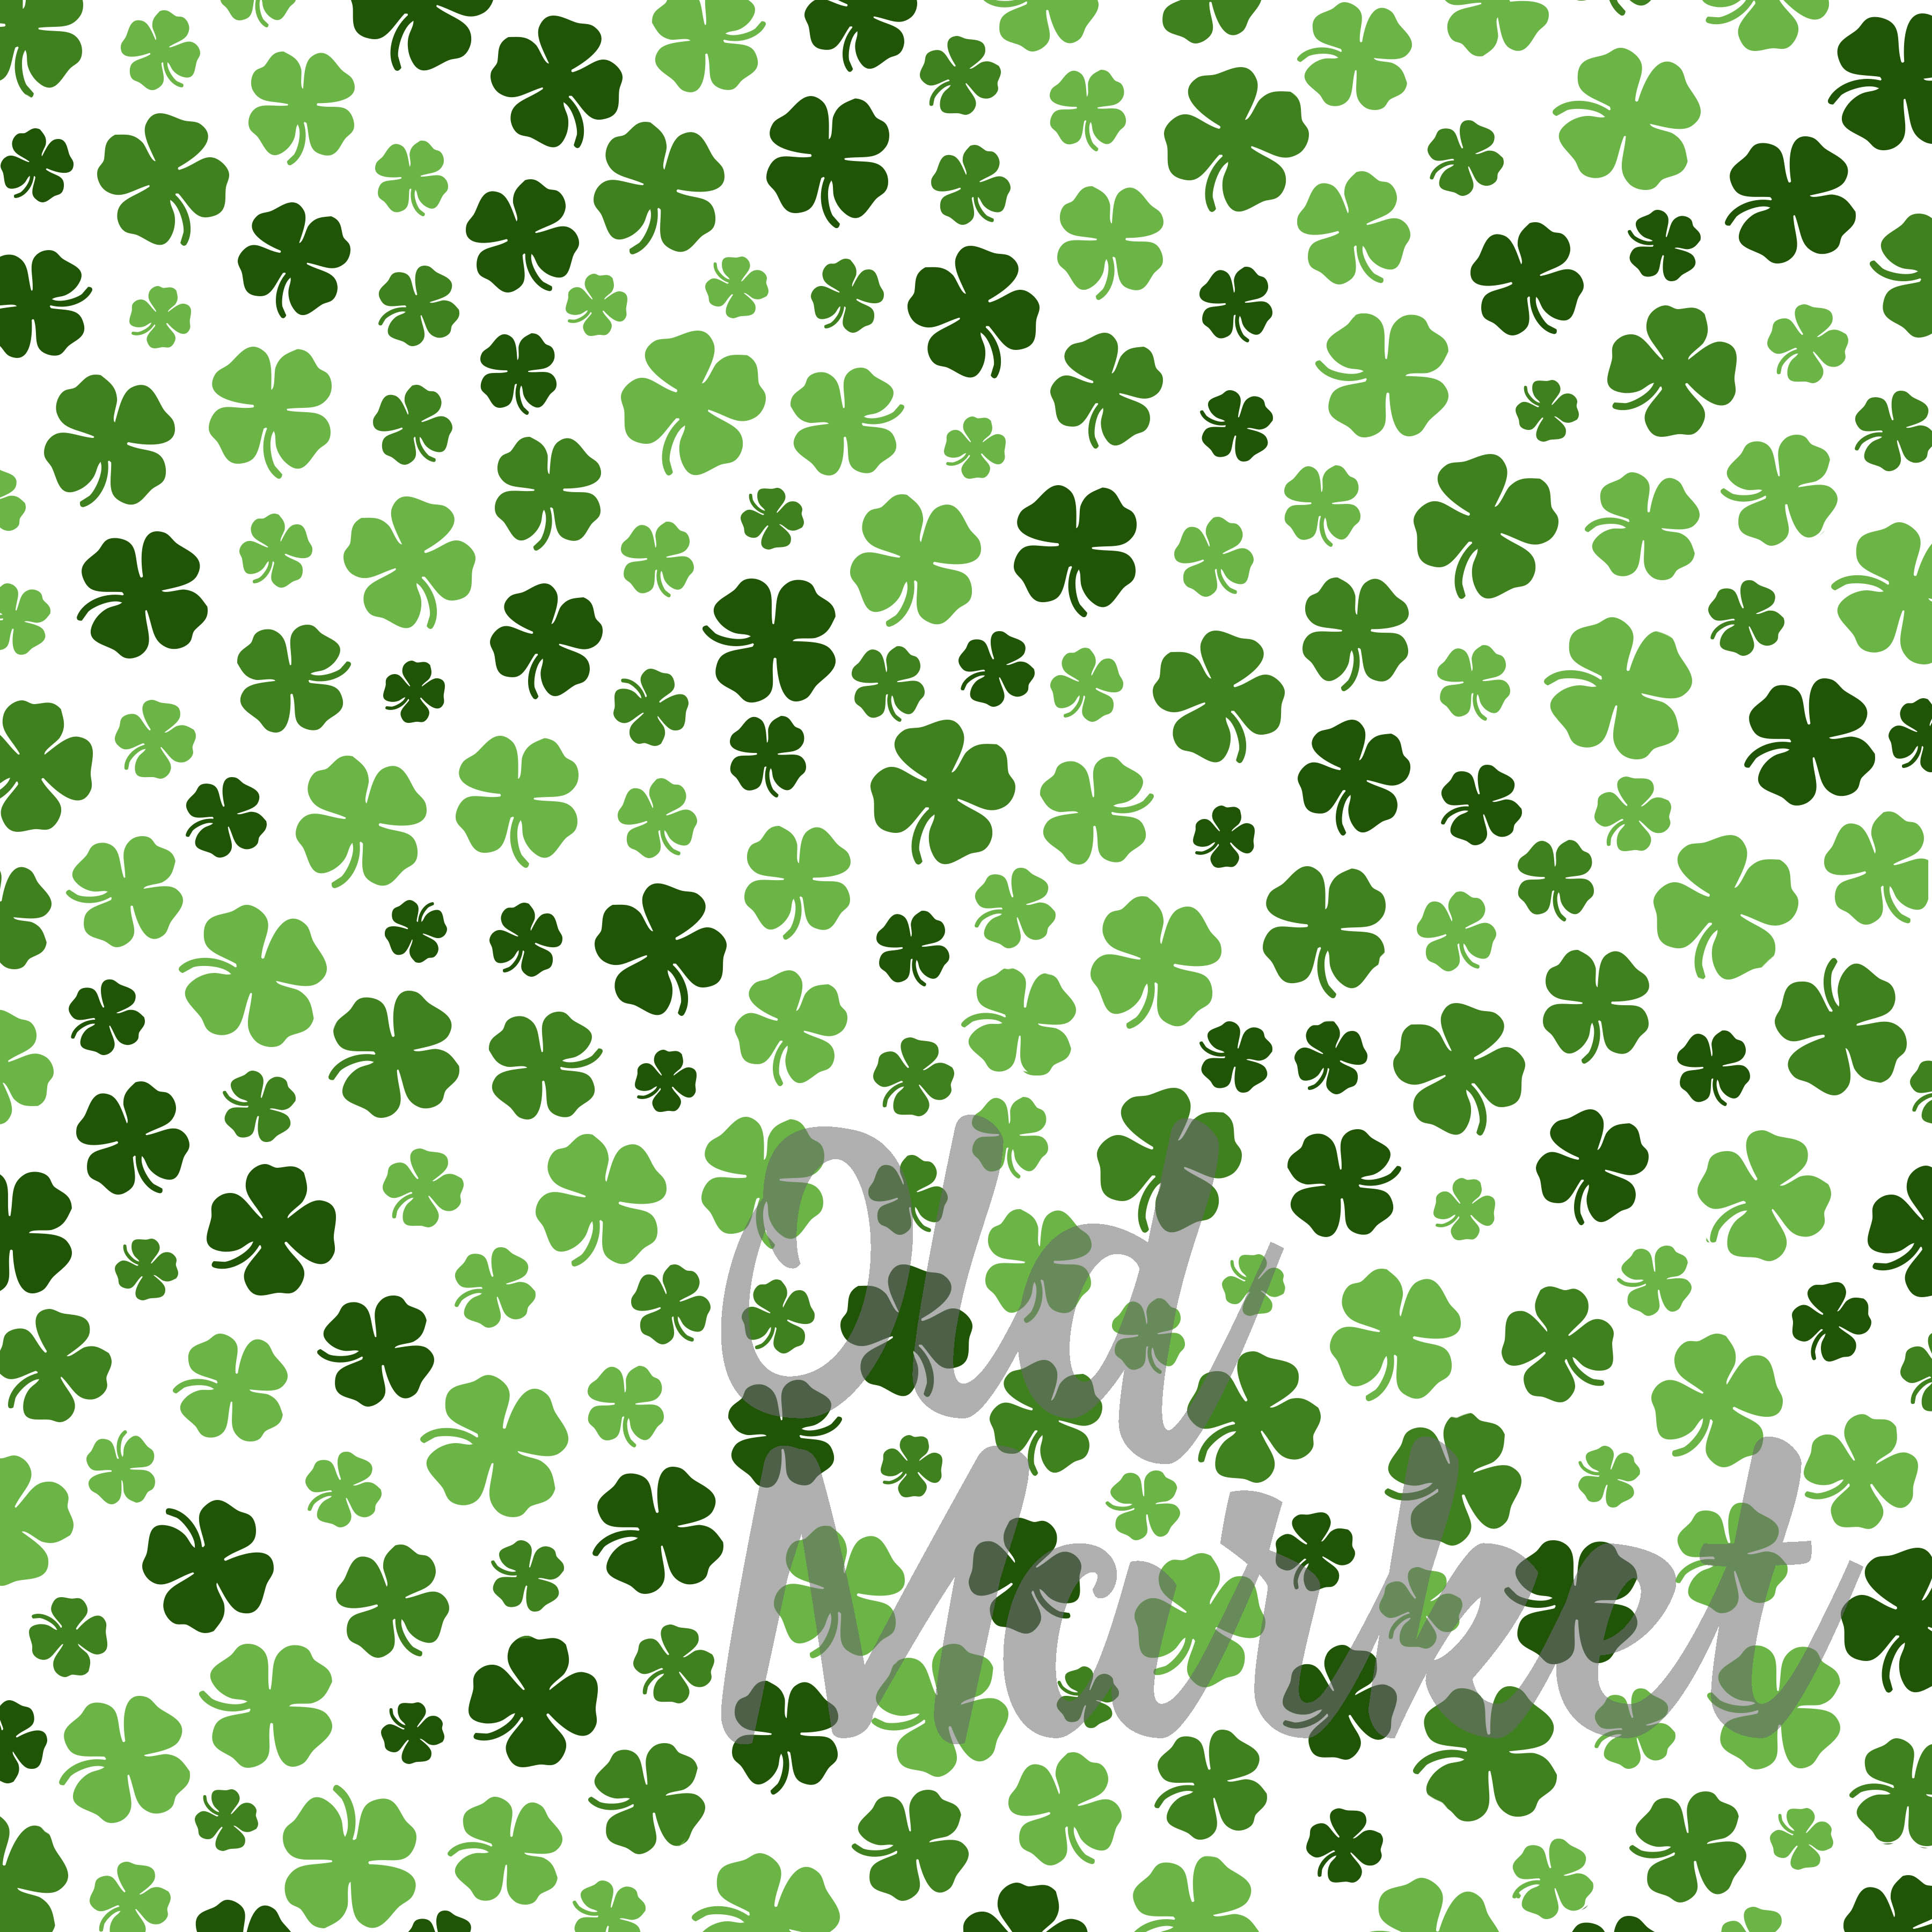 Shamrock Digital Paper - St Patrick's Day Backgrounds example image 2